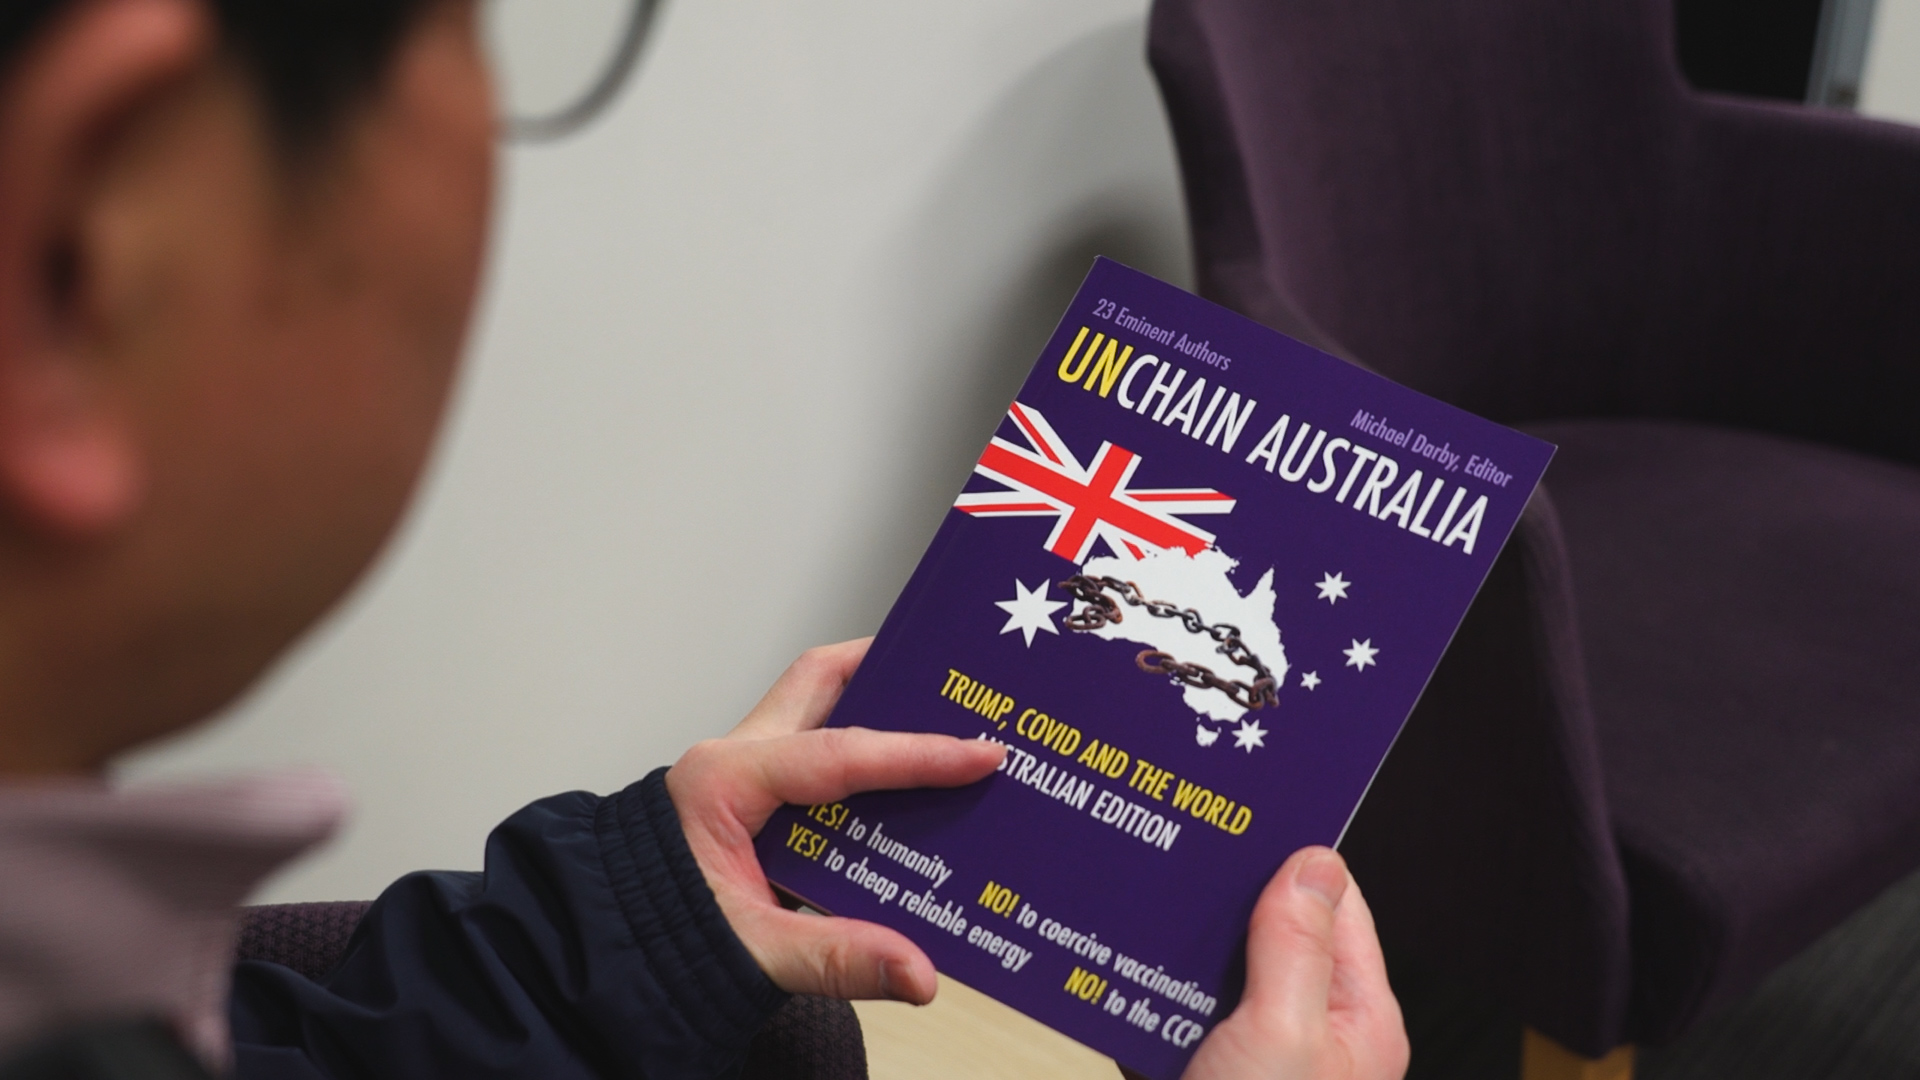 You are currently viewing Unchain Australia, A New Book You Should Read